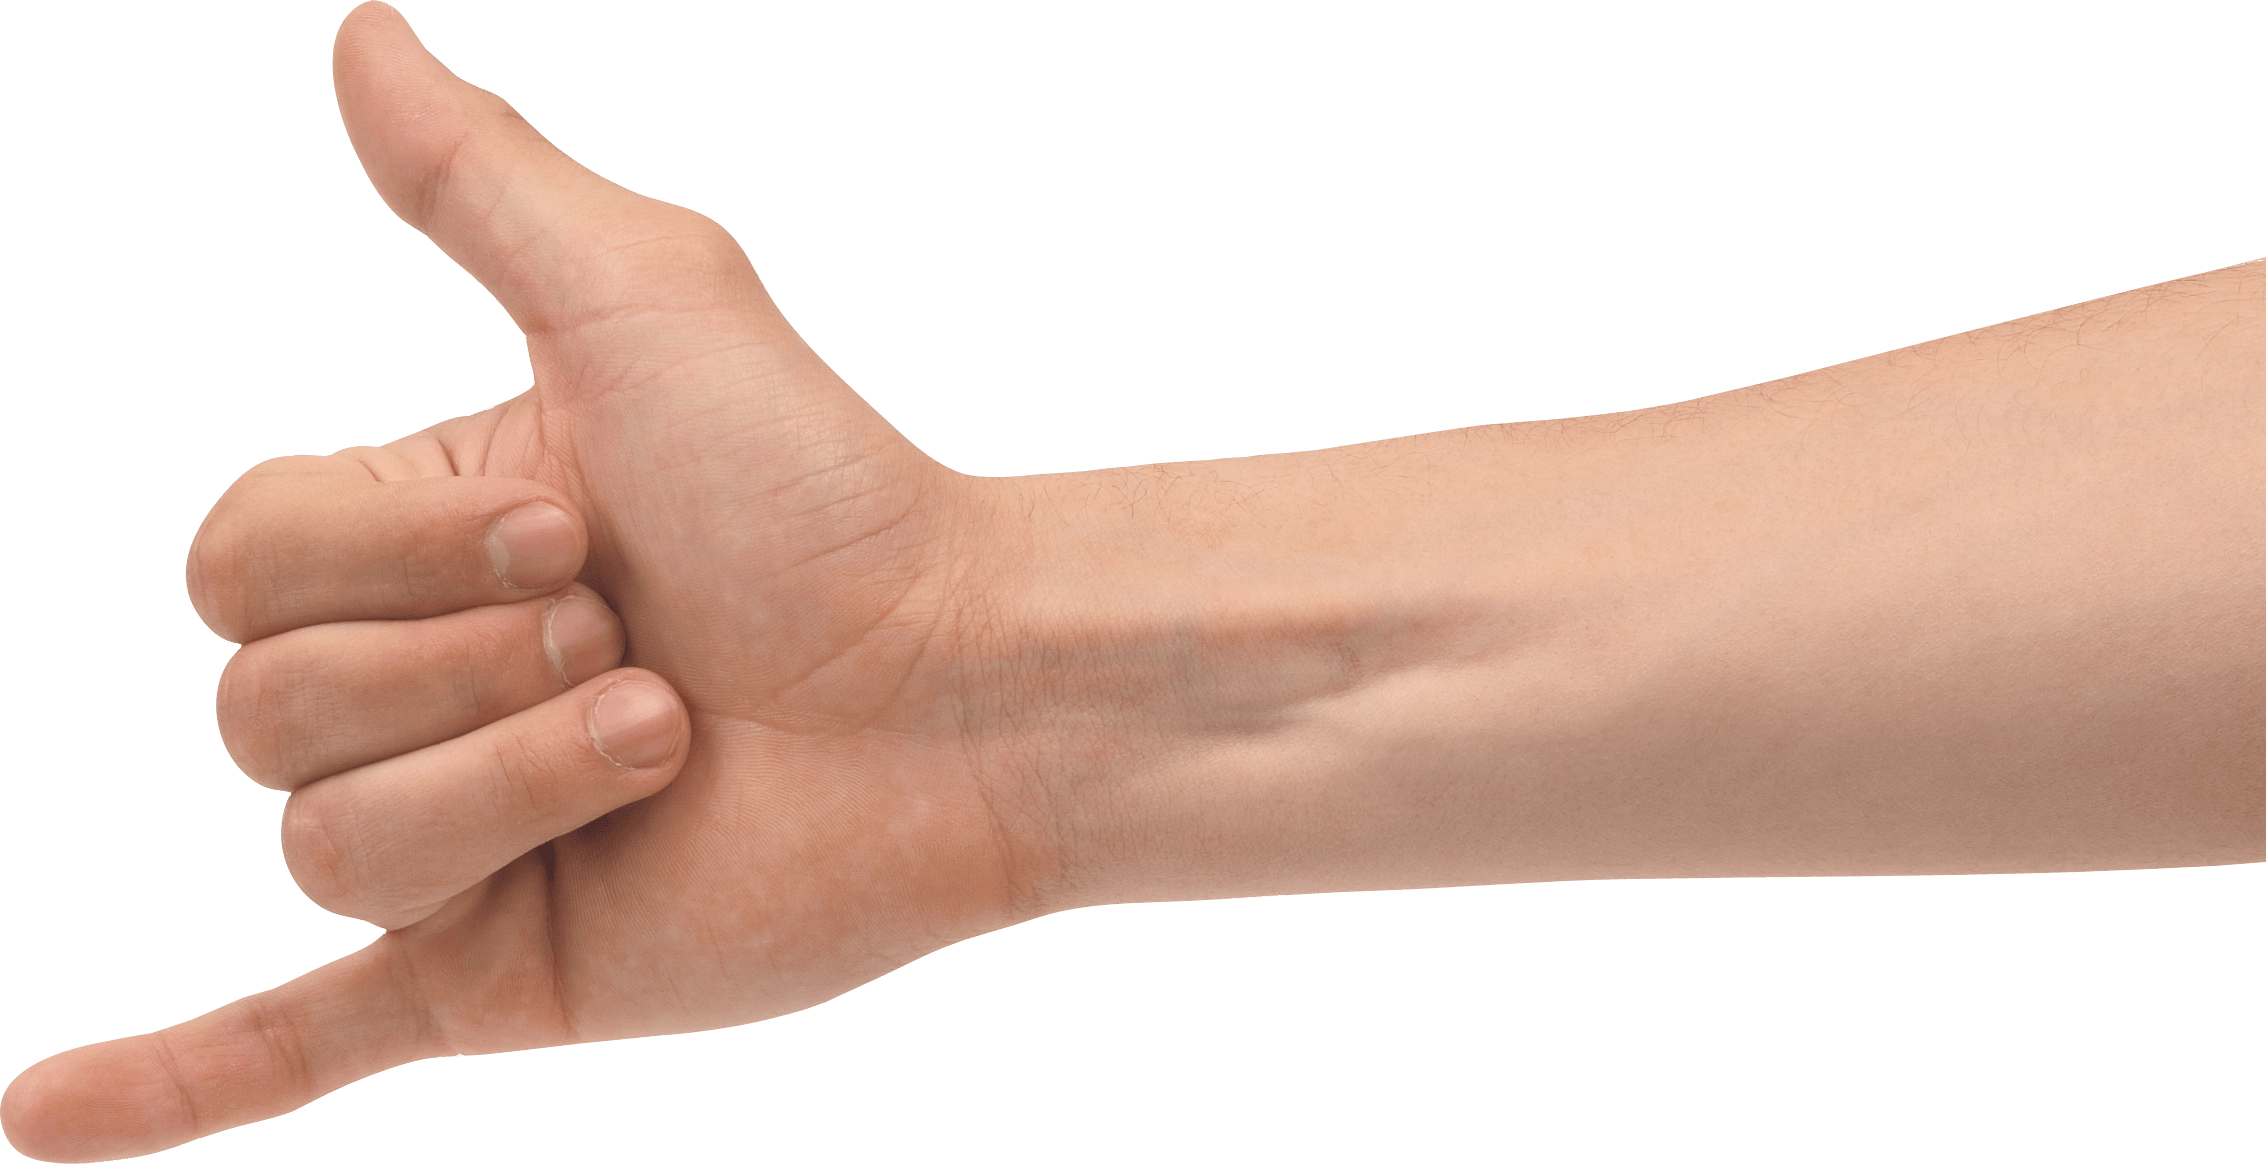 download hands png hand image png image pngimg #10563